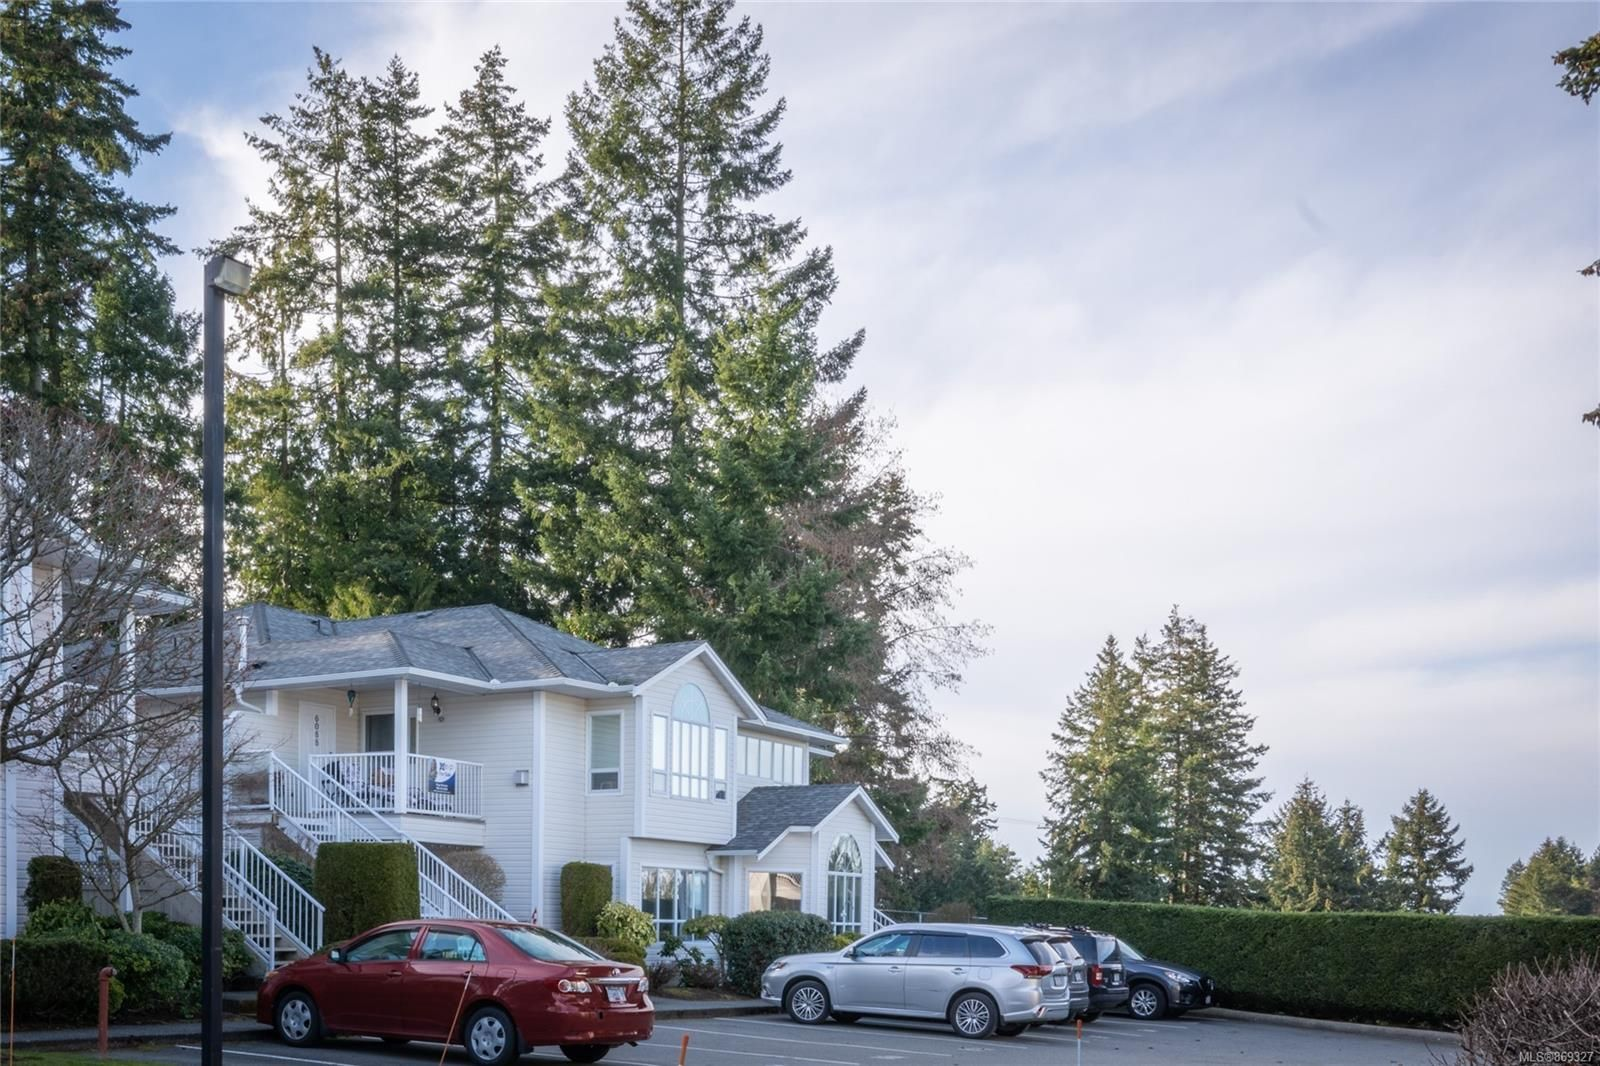 Main Photo: 6088 Cedar Grove Dr in : Na North Nanaimo Row/Townhouse for sale (Nanaimo)  : MLS®# 869327